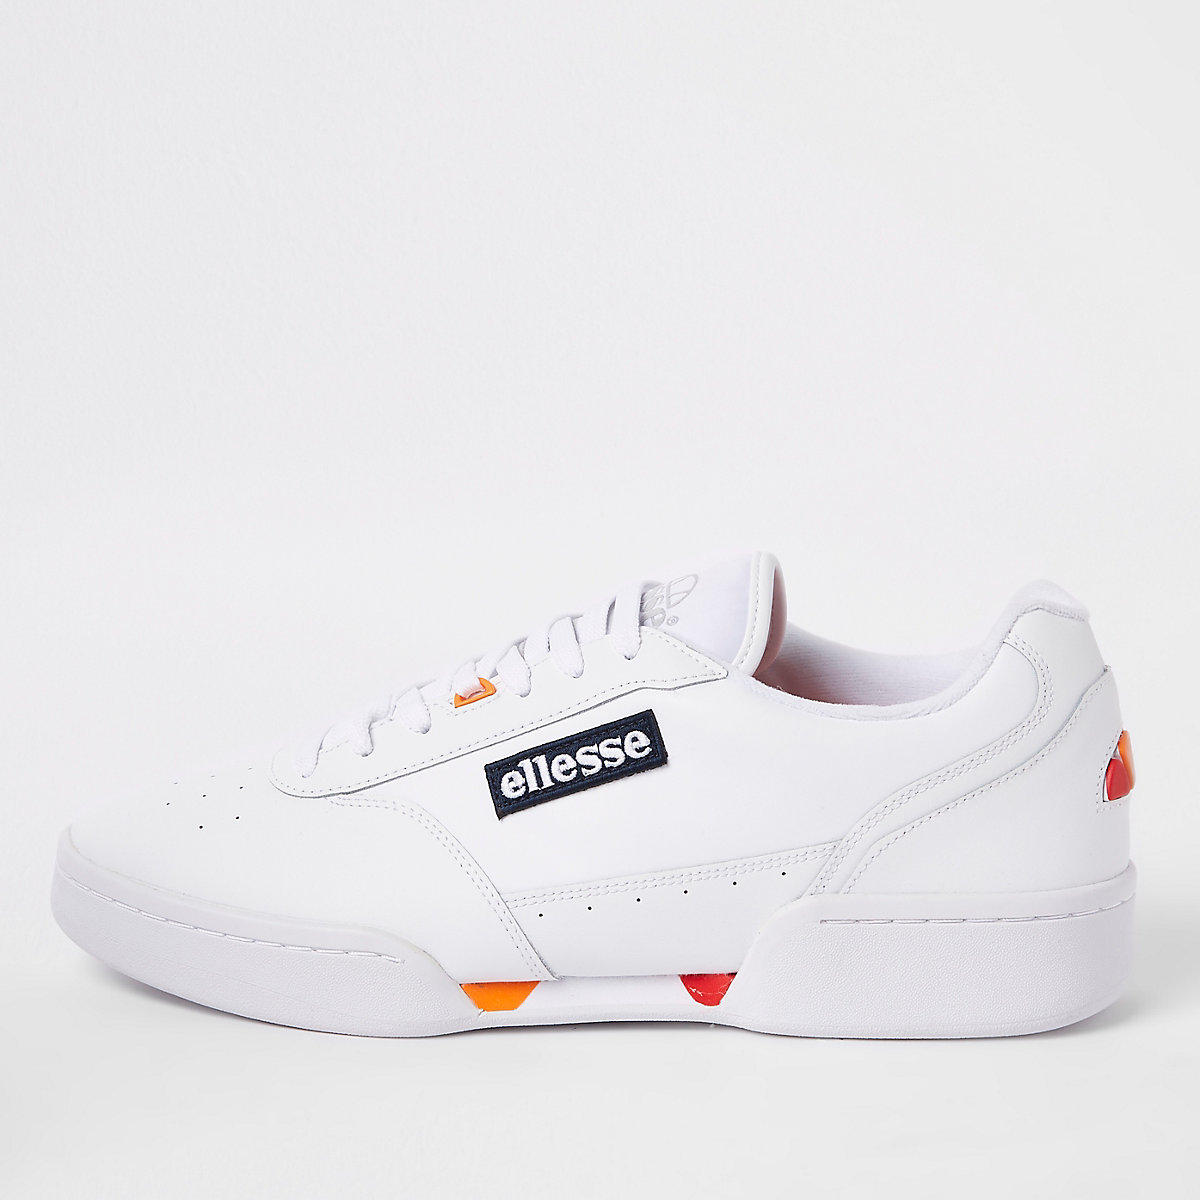 Ellesse white Piacentino leather sneakers